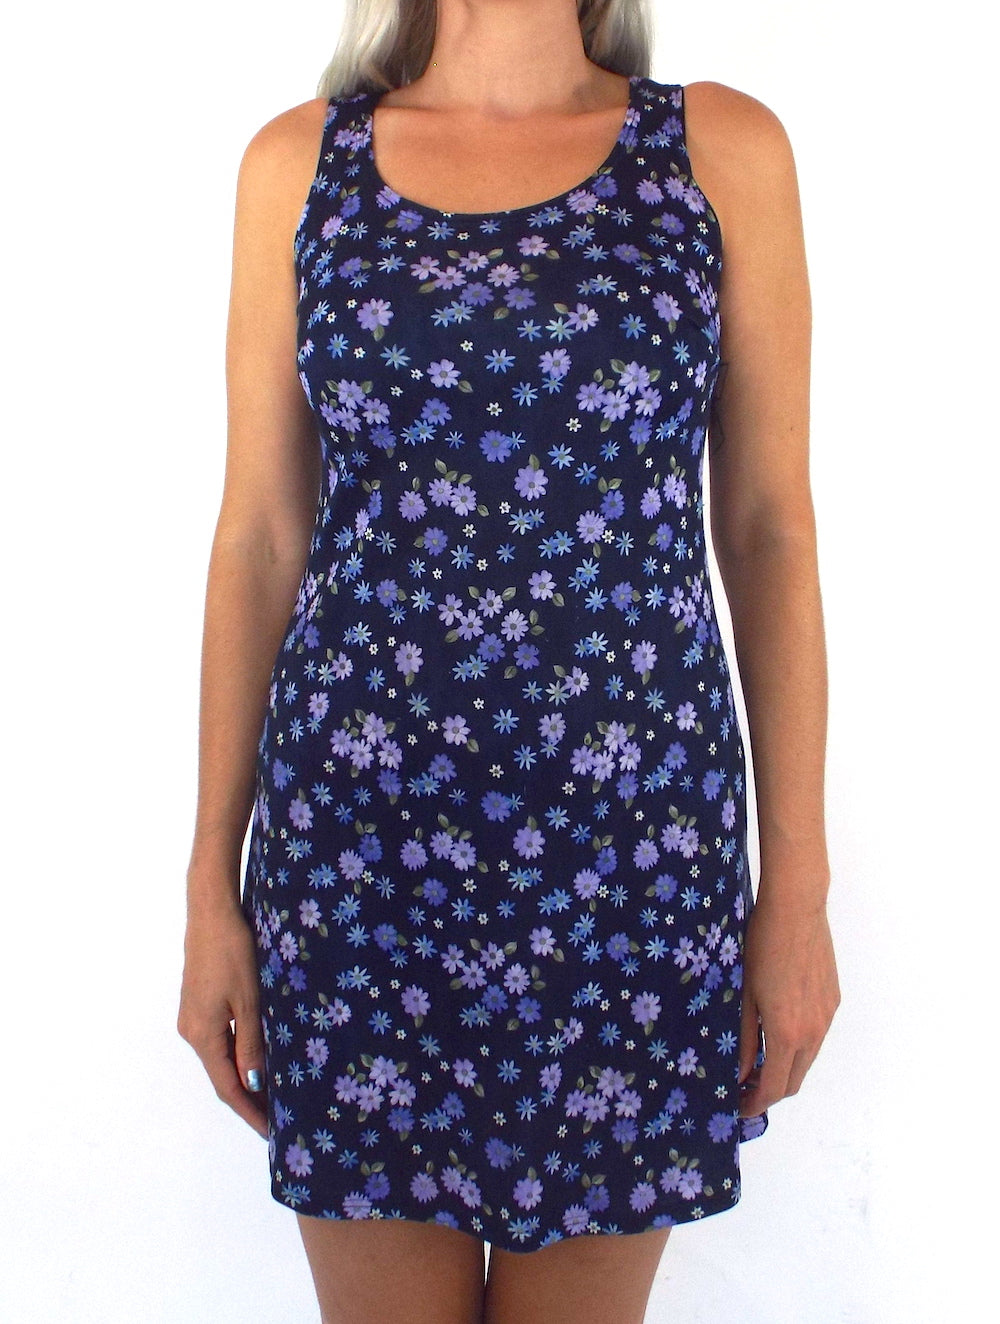 Vintage 90s Purple and Blue Floral Print Mini Dress